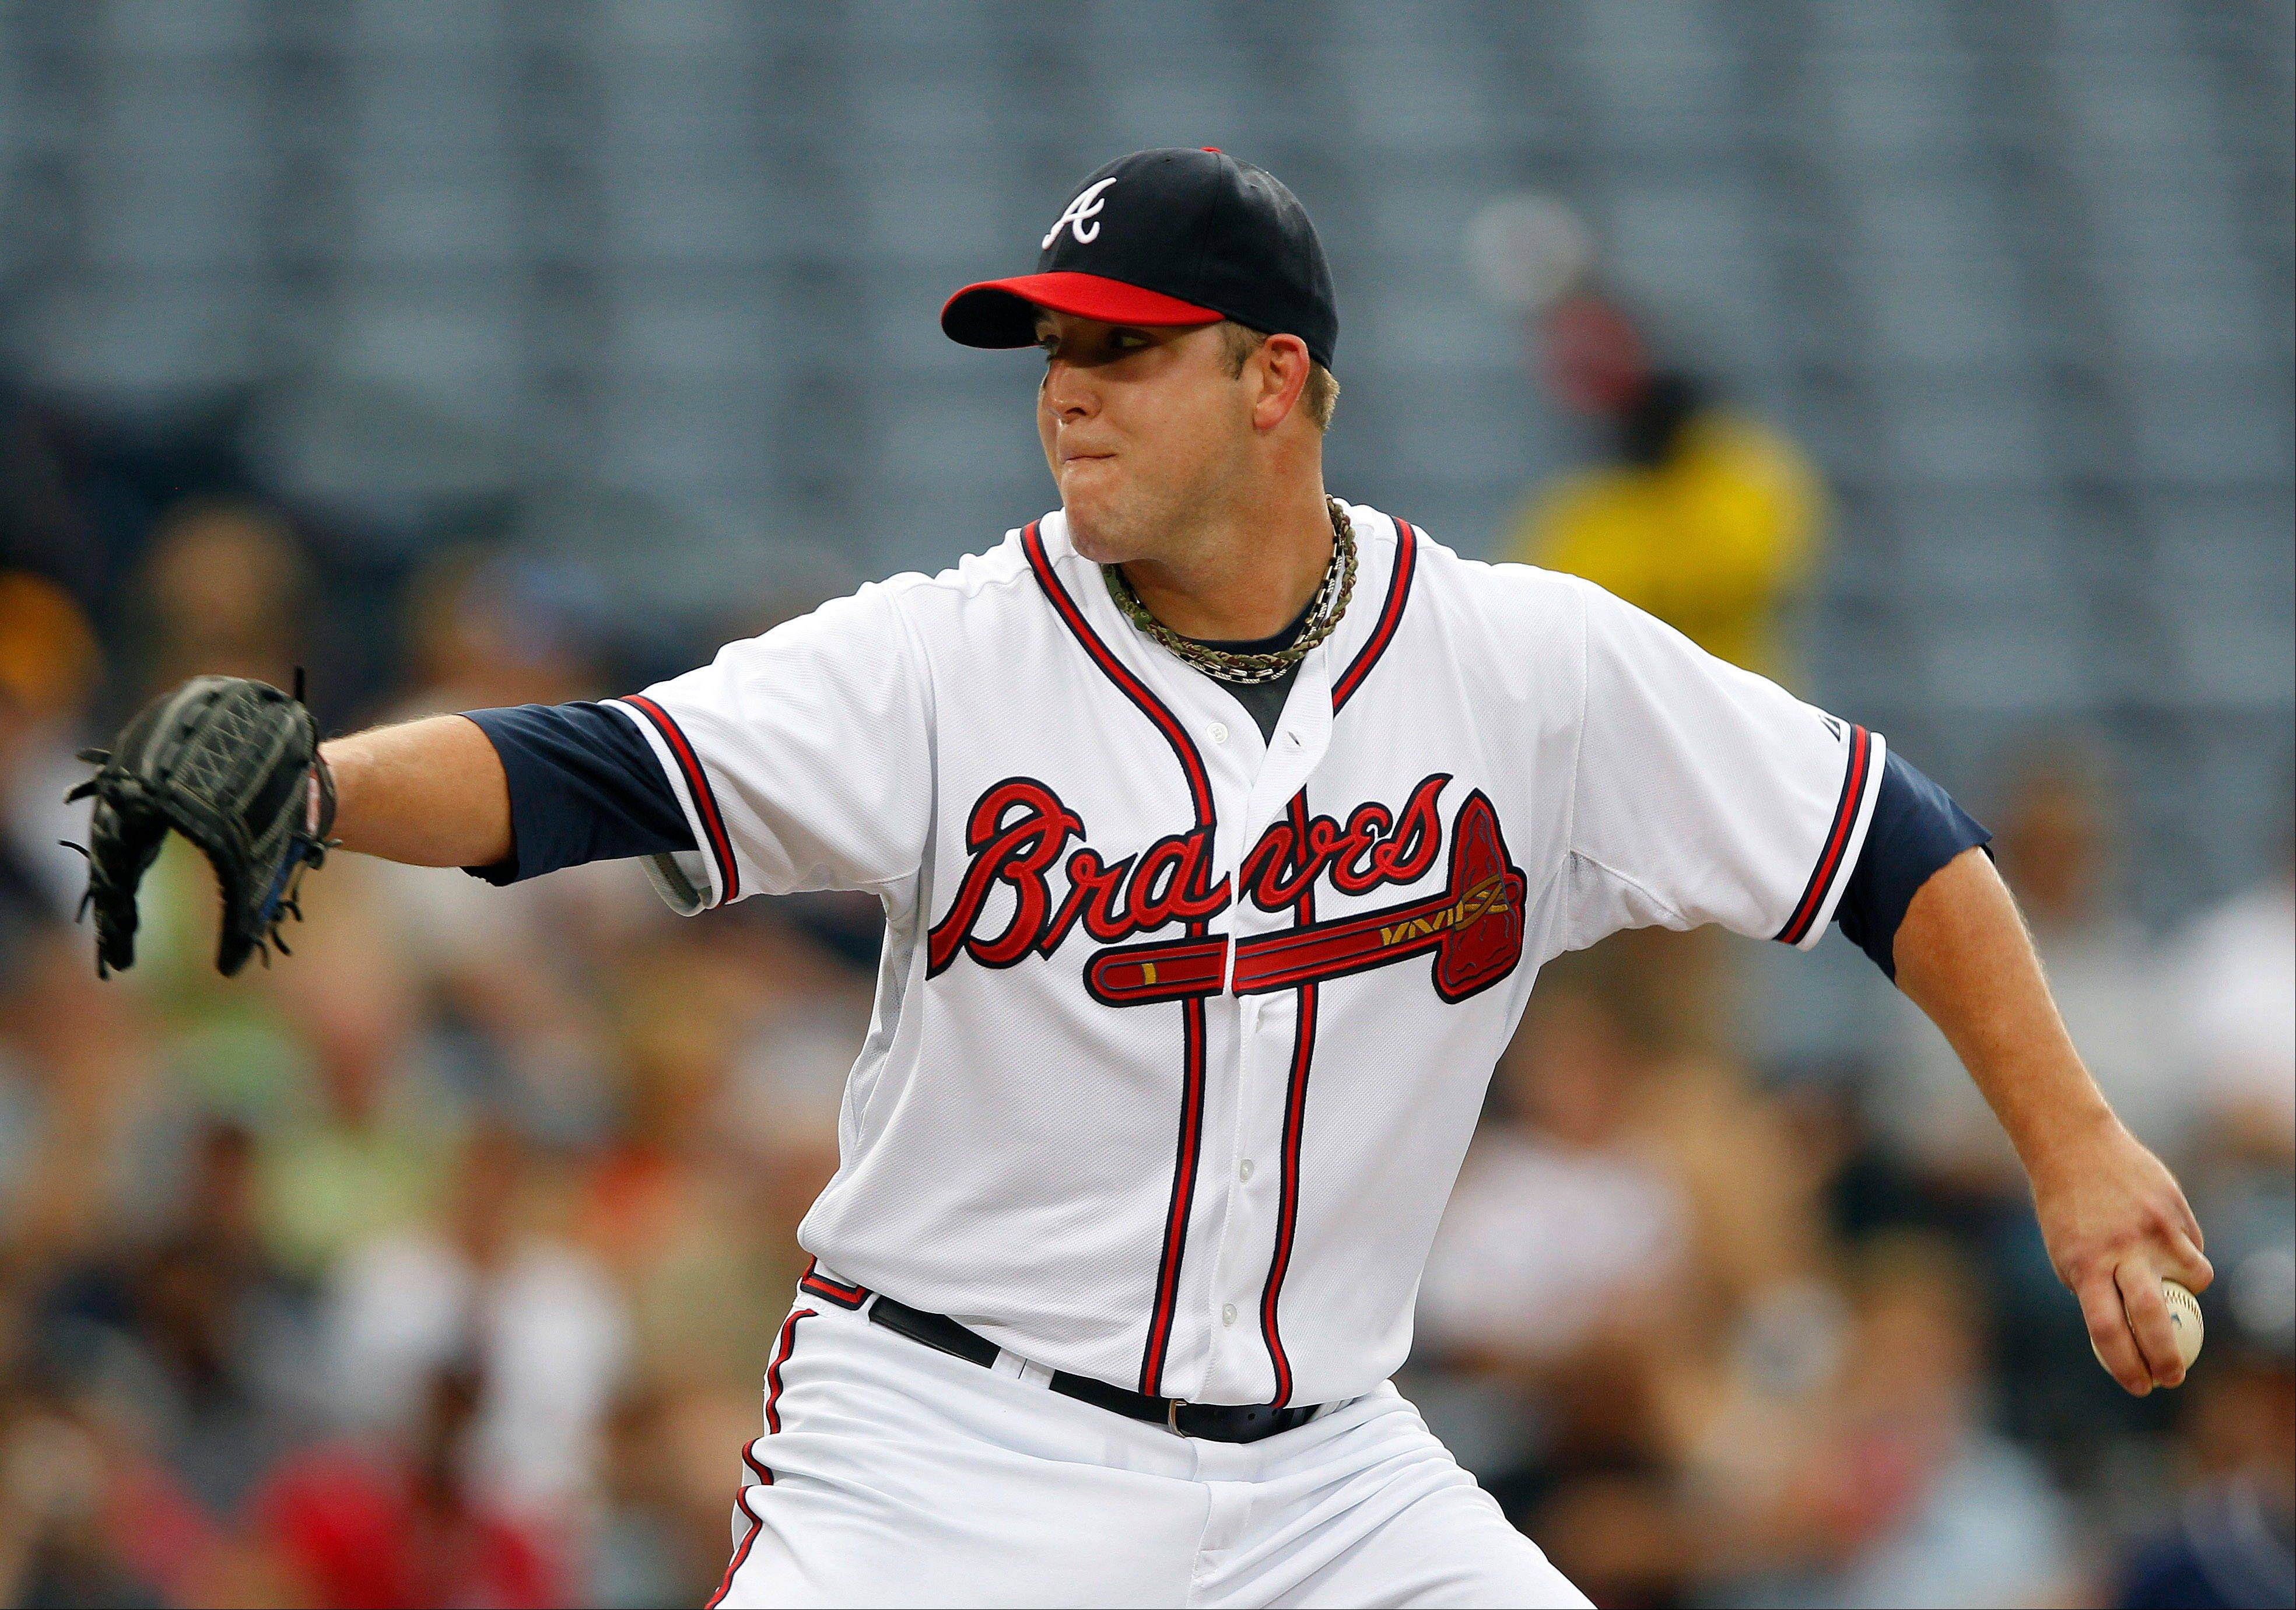 Atlanta Braves starting pitcher Paul Maholm works Wednesday during the first inning against the San Diego Padres.